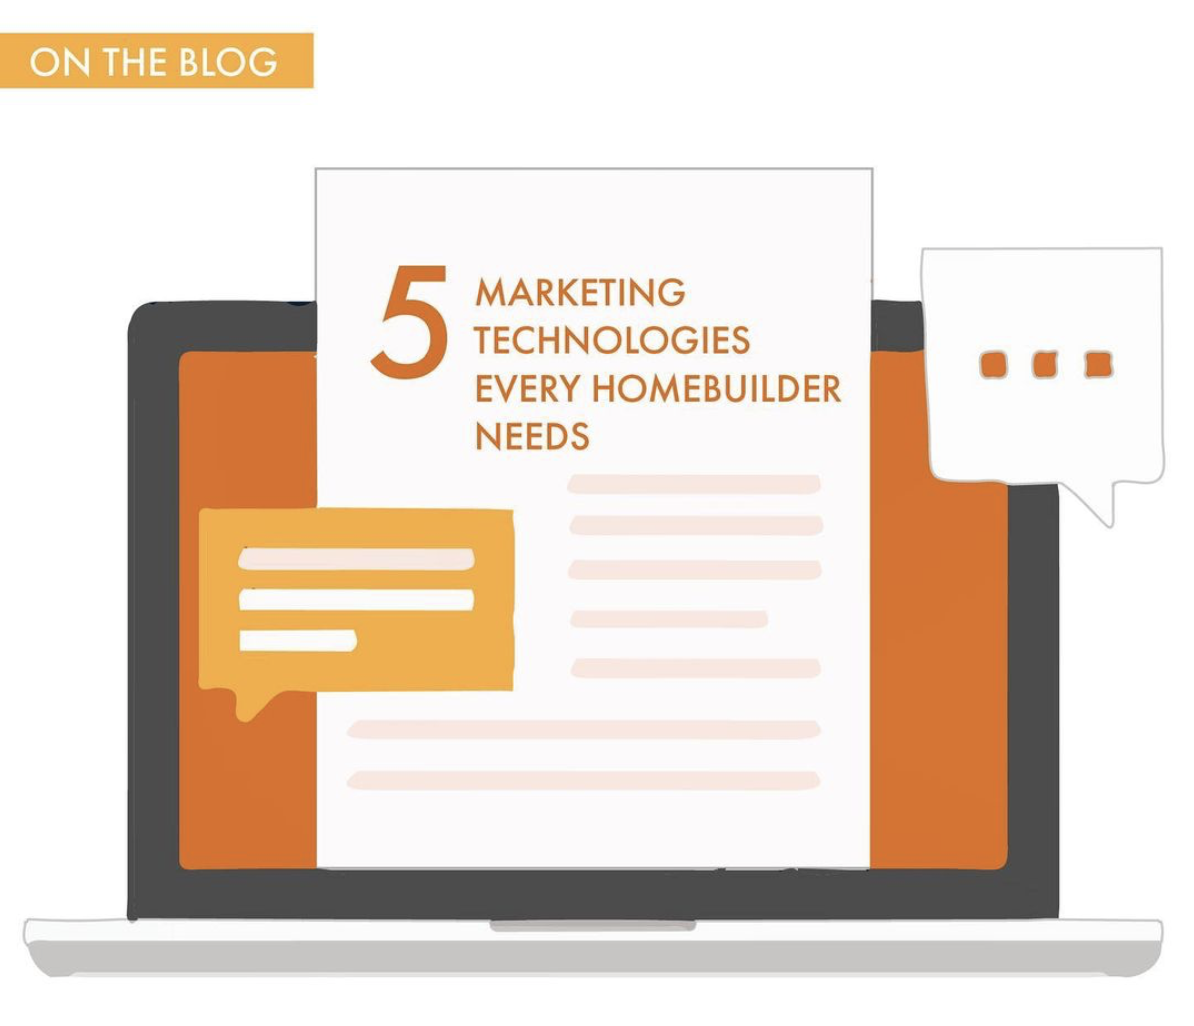 5 Marketing Technologies Every Homebuilder Needs